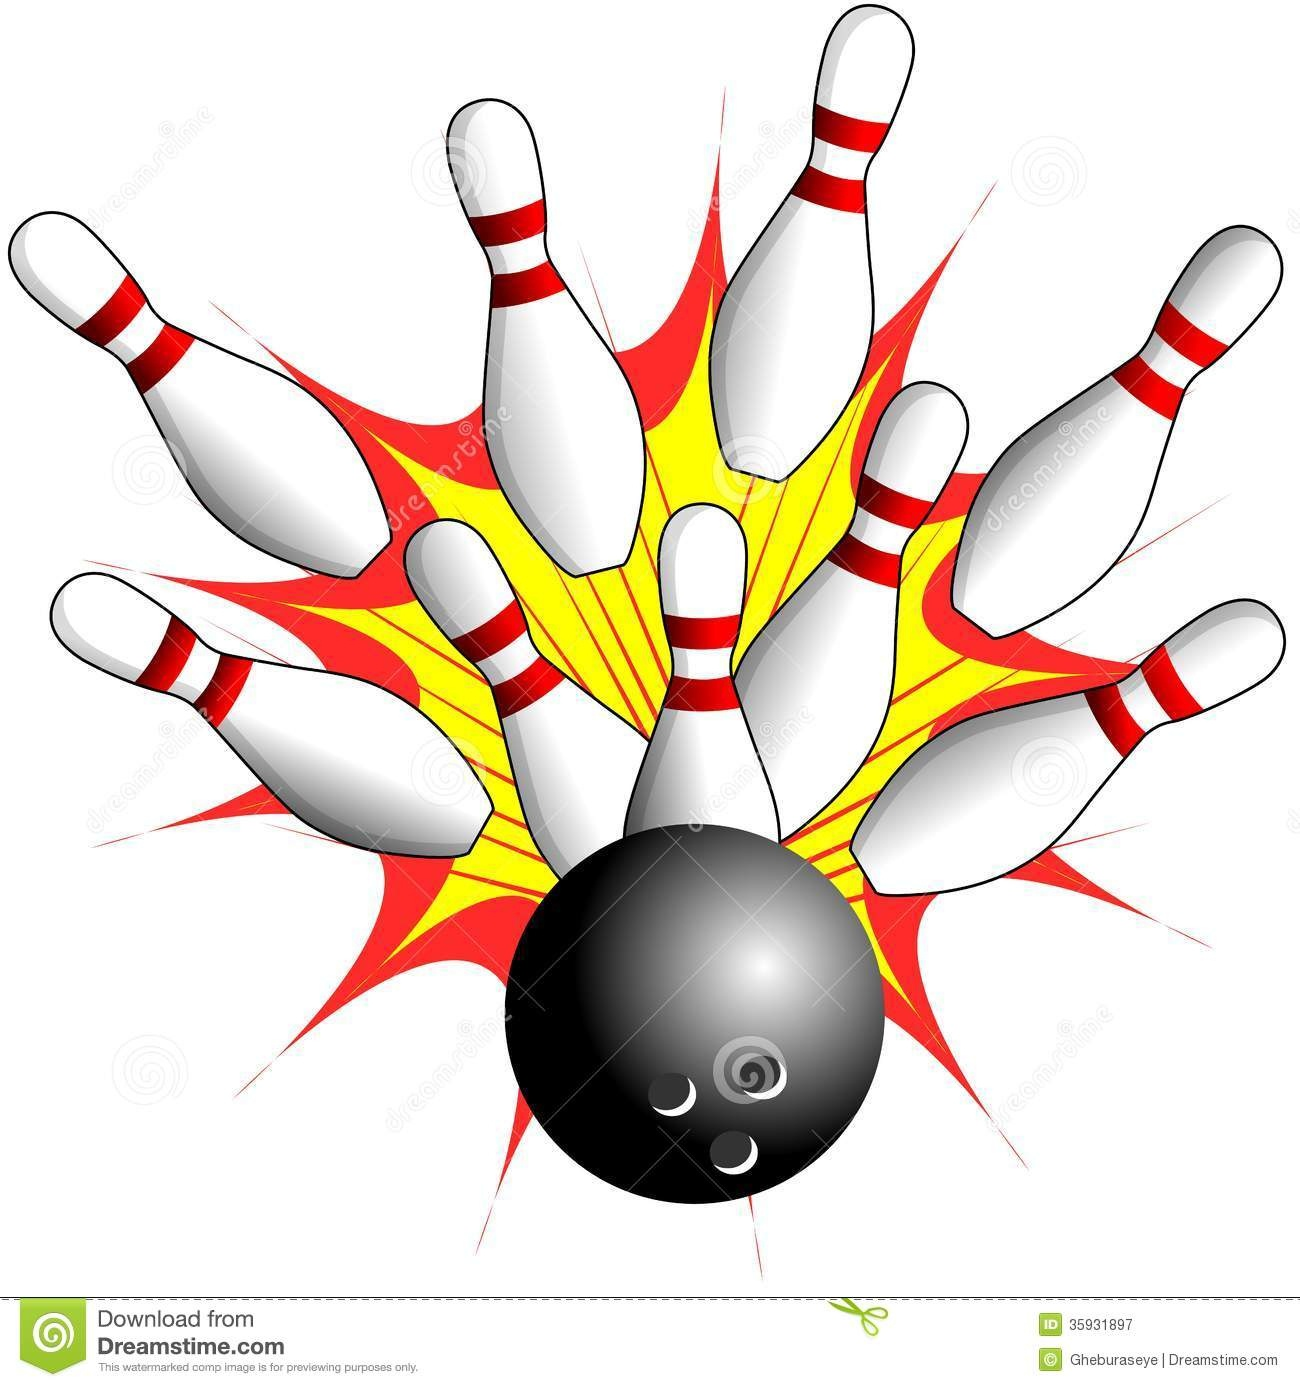 Bowling Free Clipart | Free Download Best Bowling Free Clipart On - Free Printable Bowling Clipart